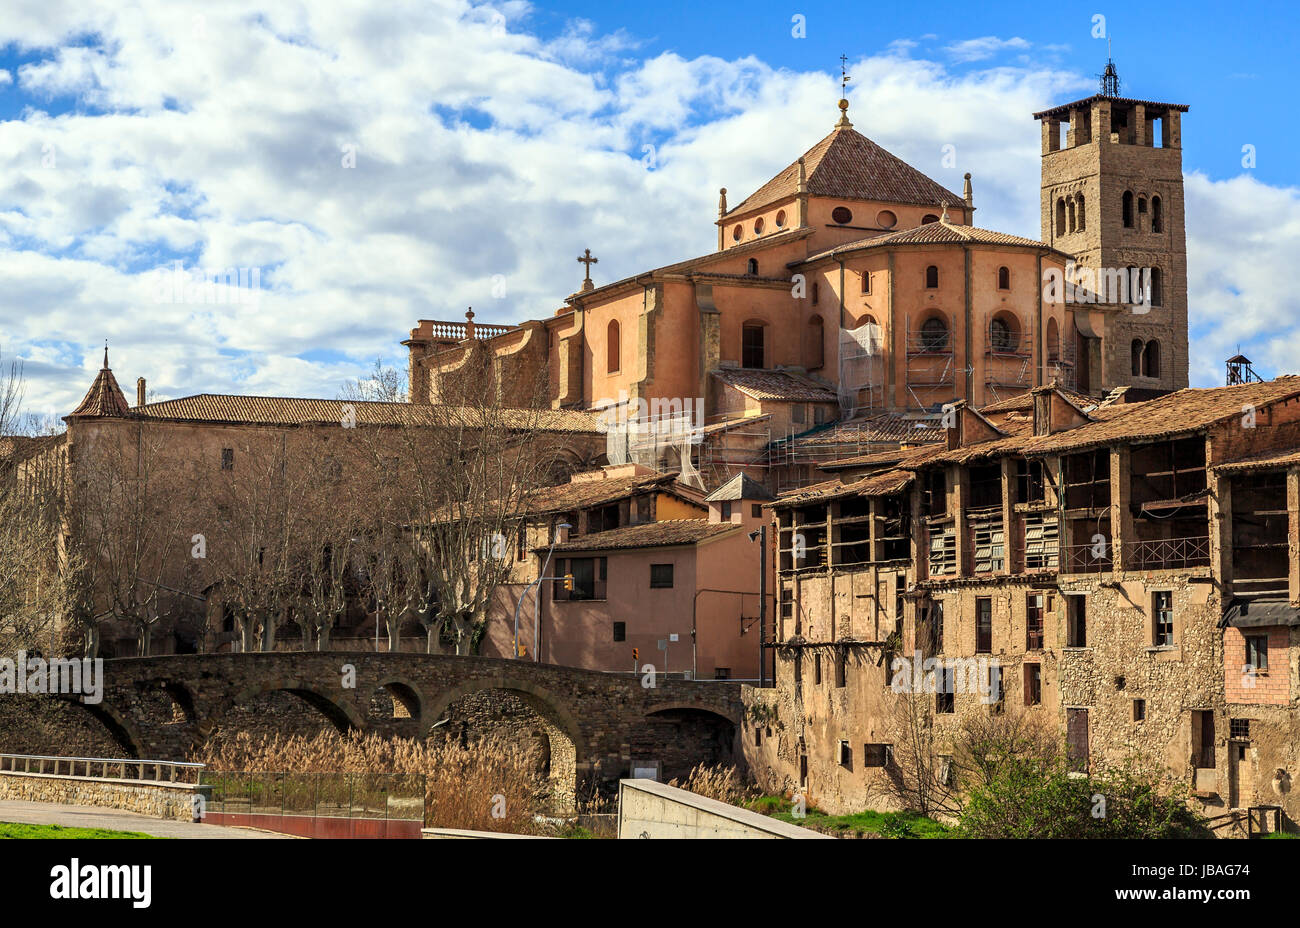 Vic, view of the Roman bridge and cathedral, Spain - Stock Image